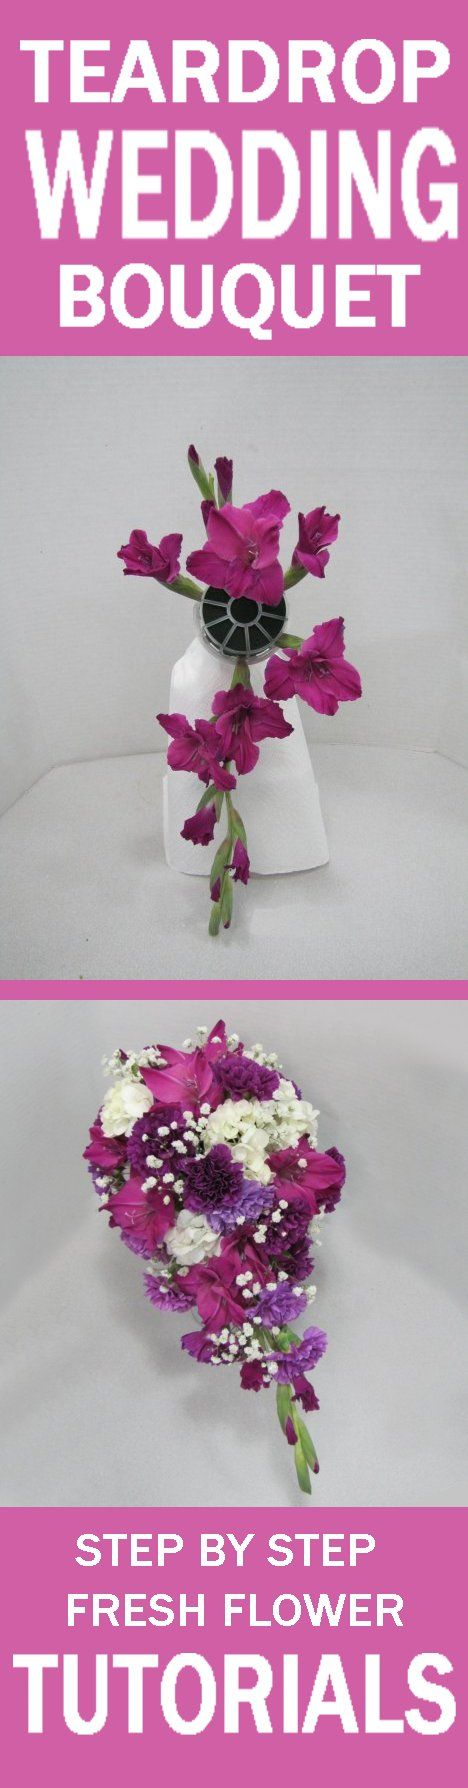 Best wedding flower arrangements florales arreglos florales y purple wedding flower bouquets easy free fresh flower tutorials learn how to make bridal bouquets solutioingenieria